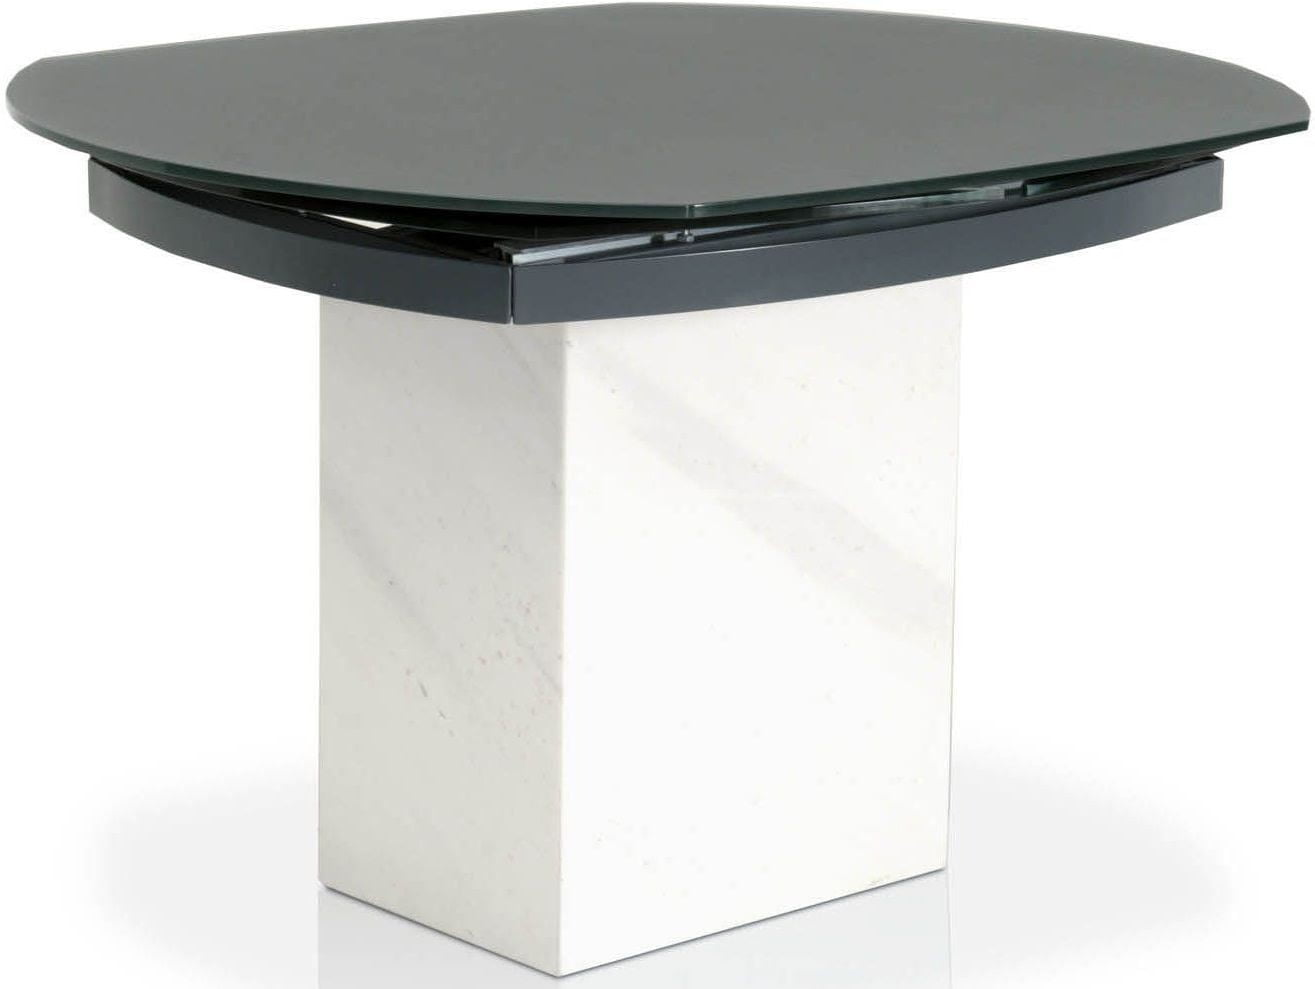 Era Matte Grey Top Extendable Dining Table From Star International - Marble top extendable dining table